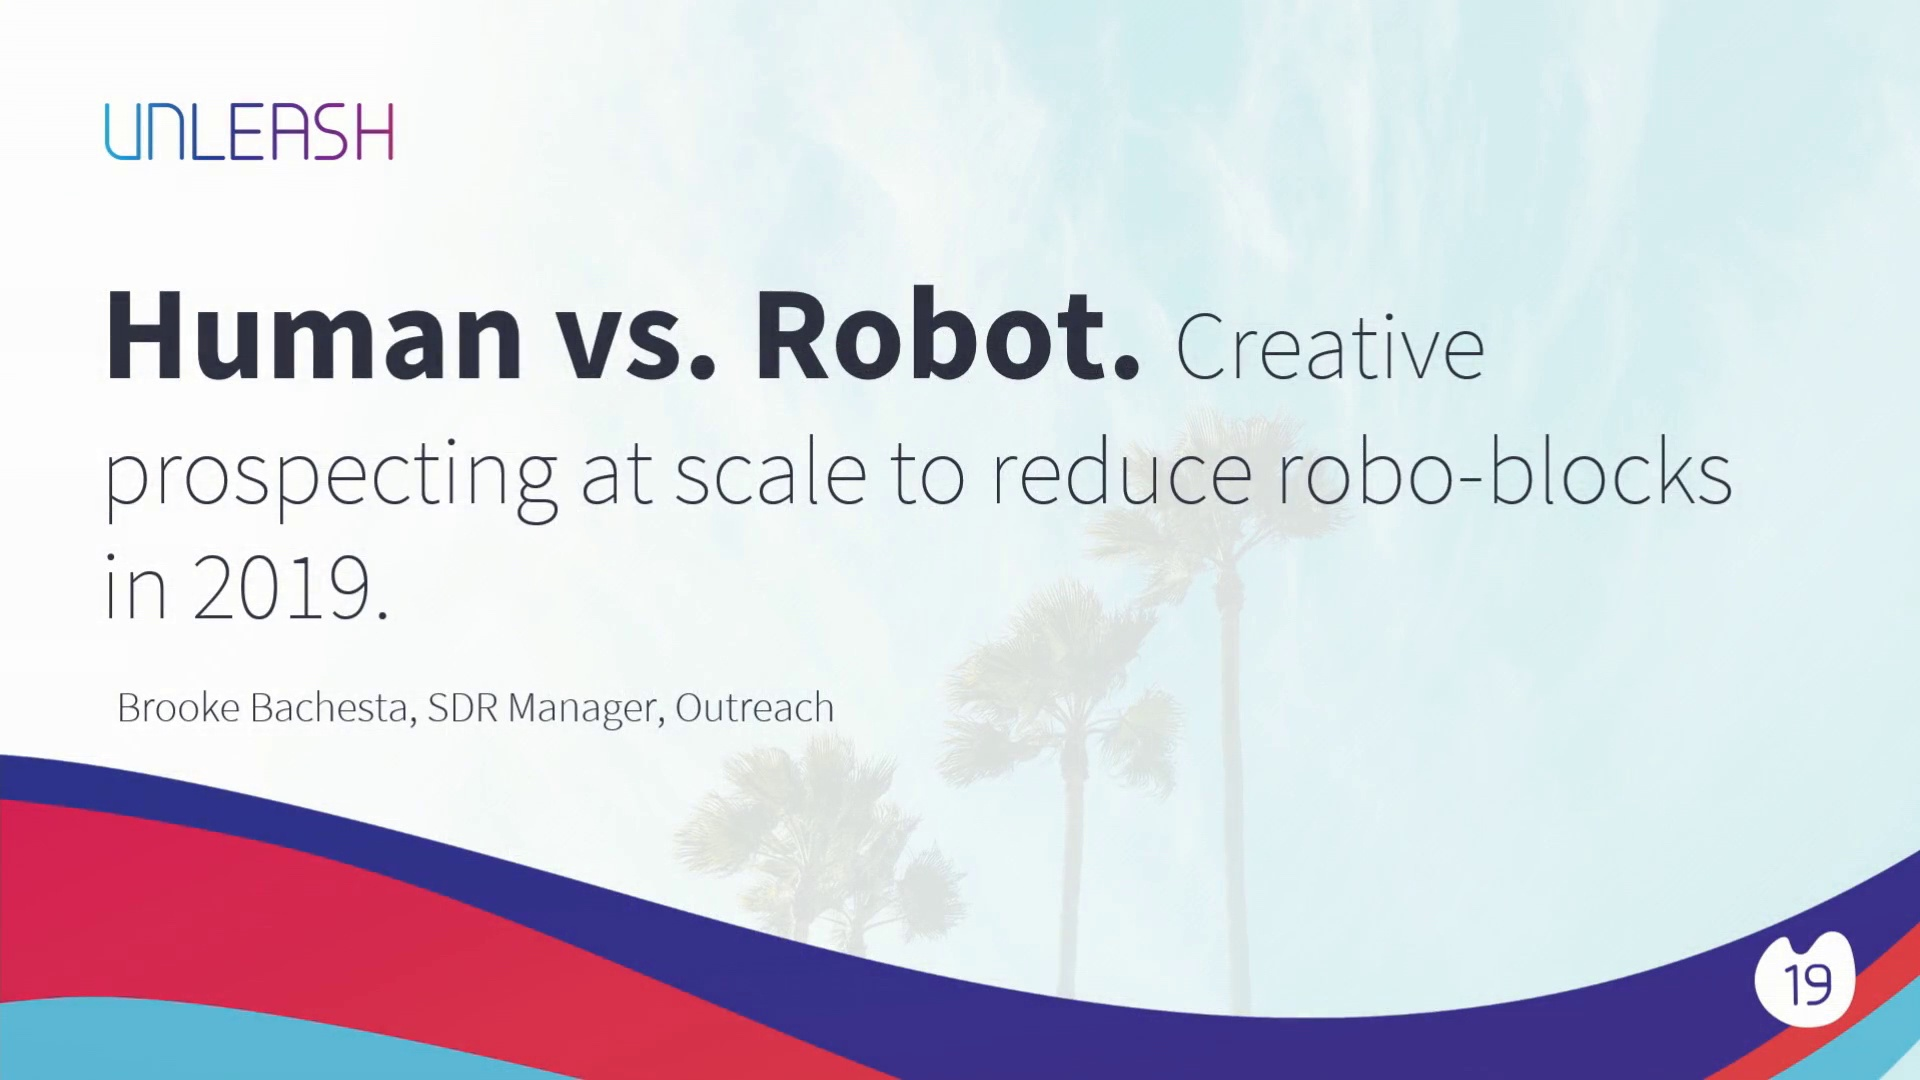 Human vs Robot, Prospecting at Scale to Reduce Robo-blocks - Brooke Bachesta